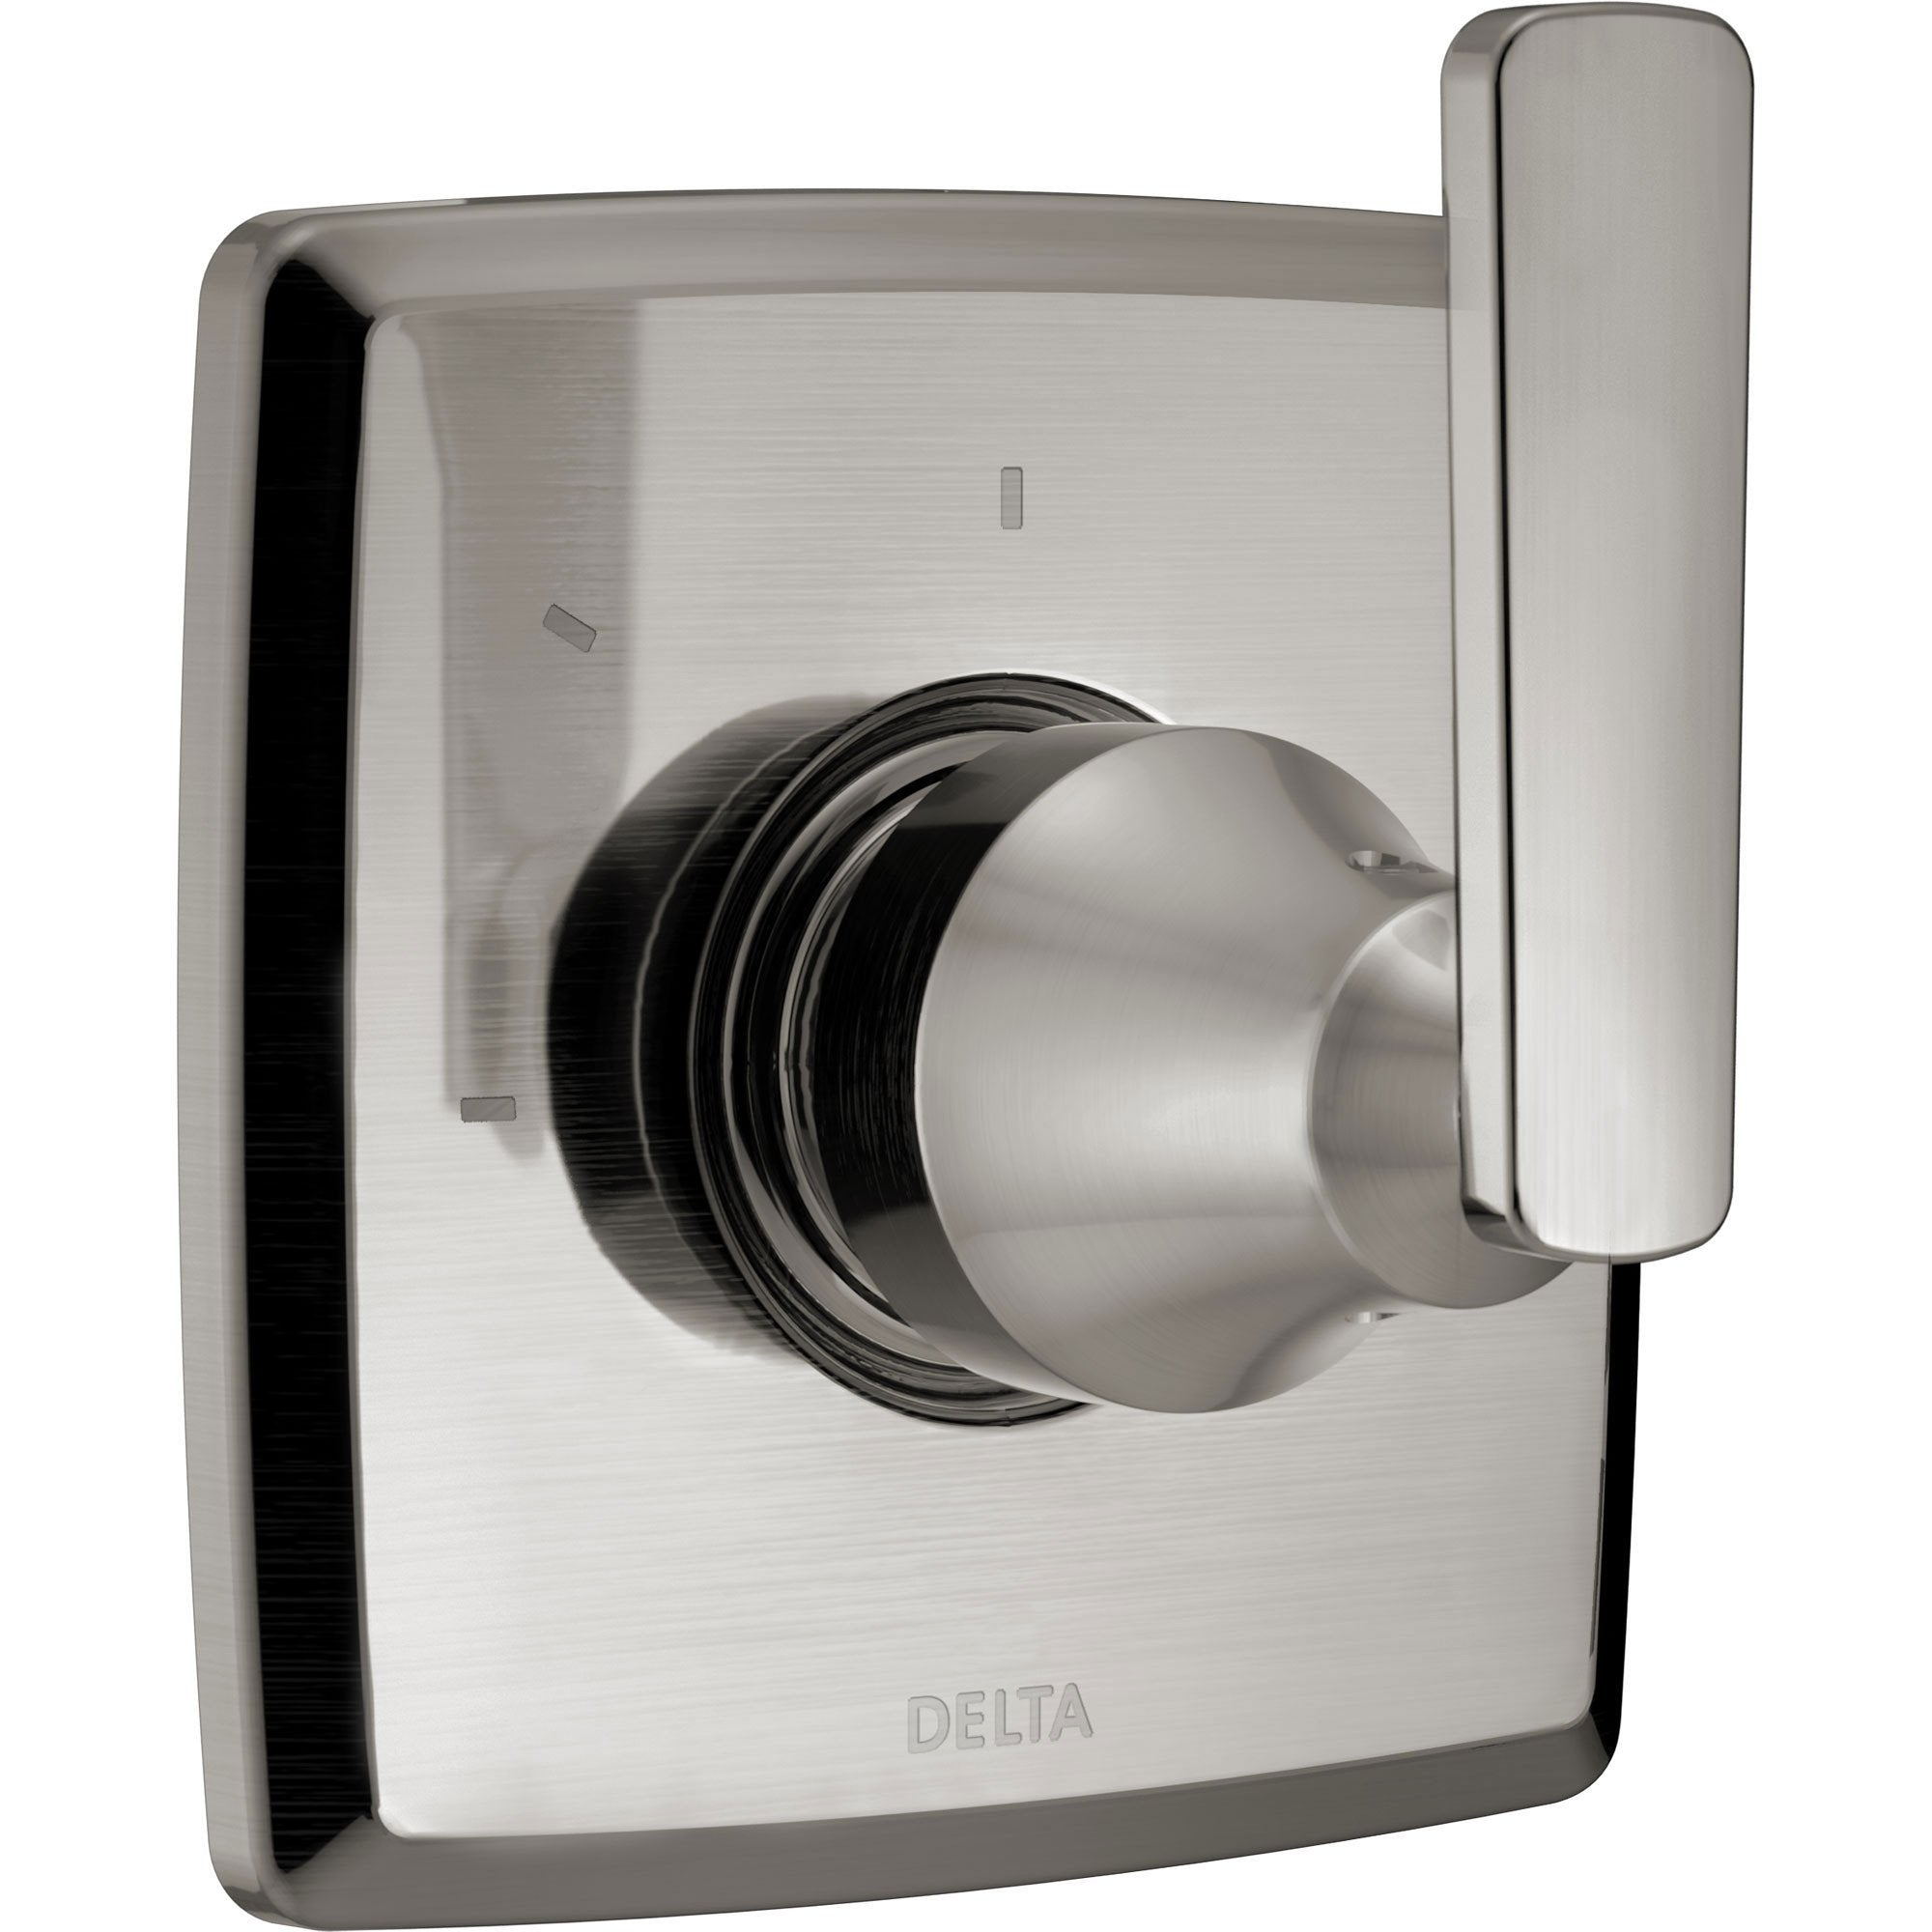 Delta Ashlyn Modern Stainless Steel Finish Single Handle 3-Setting 2-Port Shower Diverter Fixture INCLUDES Rough-in Valve D1295V